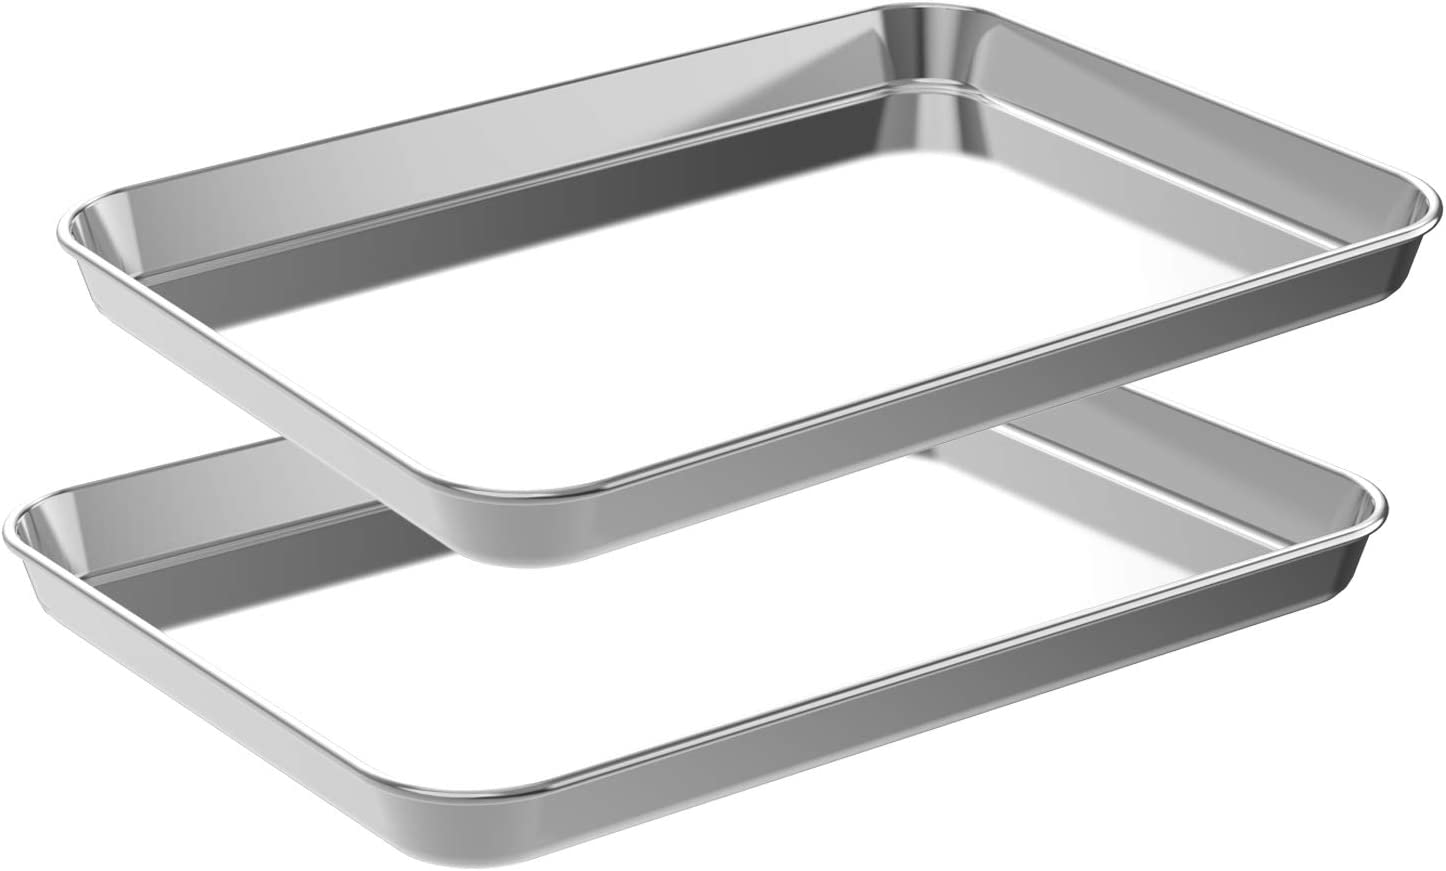 CEKEE Quarter Baking Sheet Set,2 Pans Stainless Steel Professional Kitchen Cooking Non-Stick Bake Pan for Cookie Muffin Cake Pizza Toaster Food Oven Trays(9 Inch)